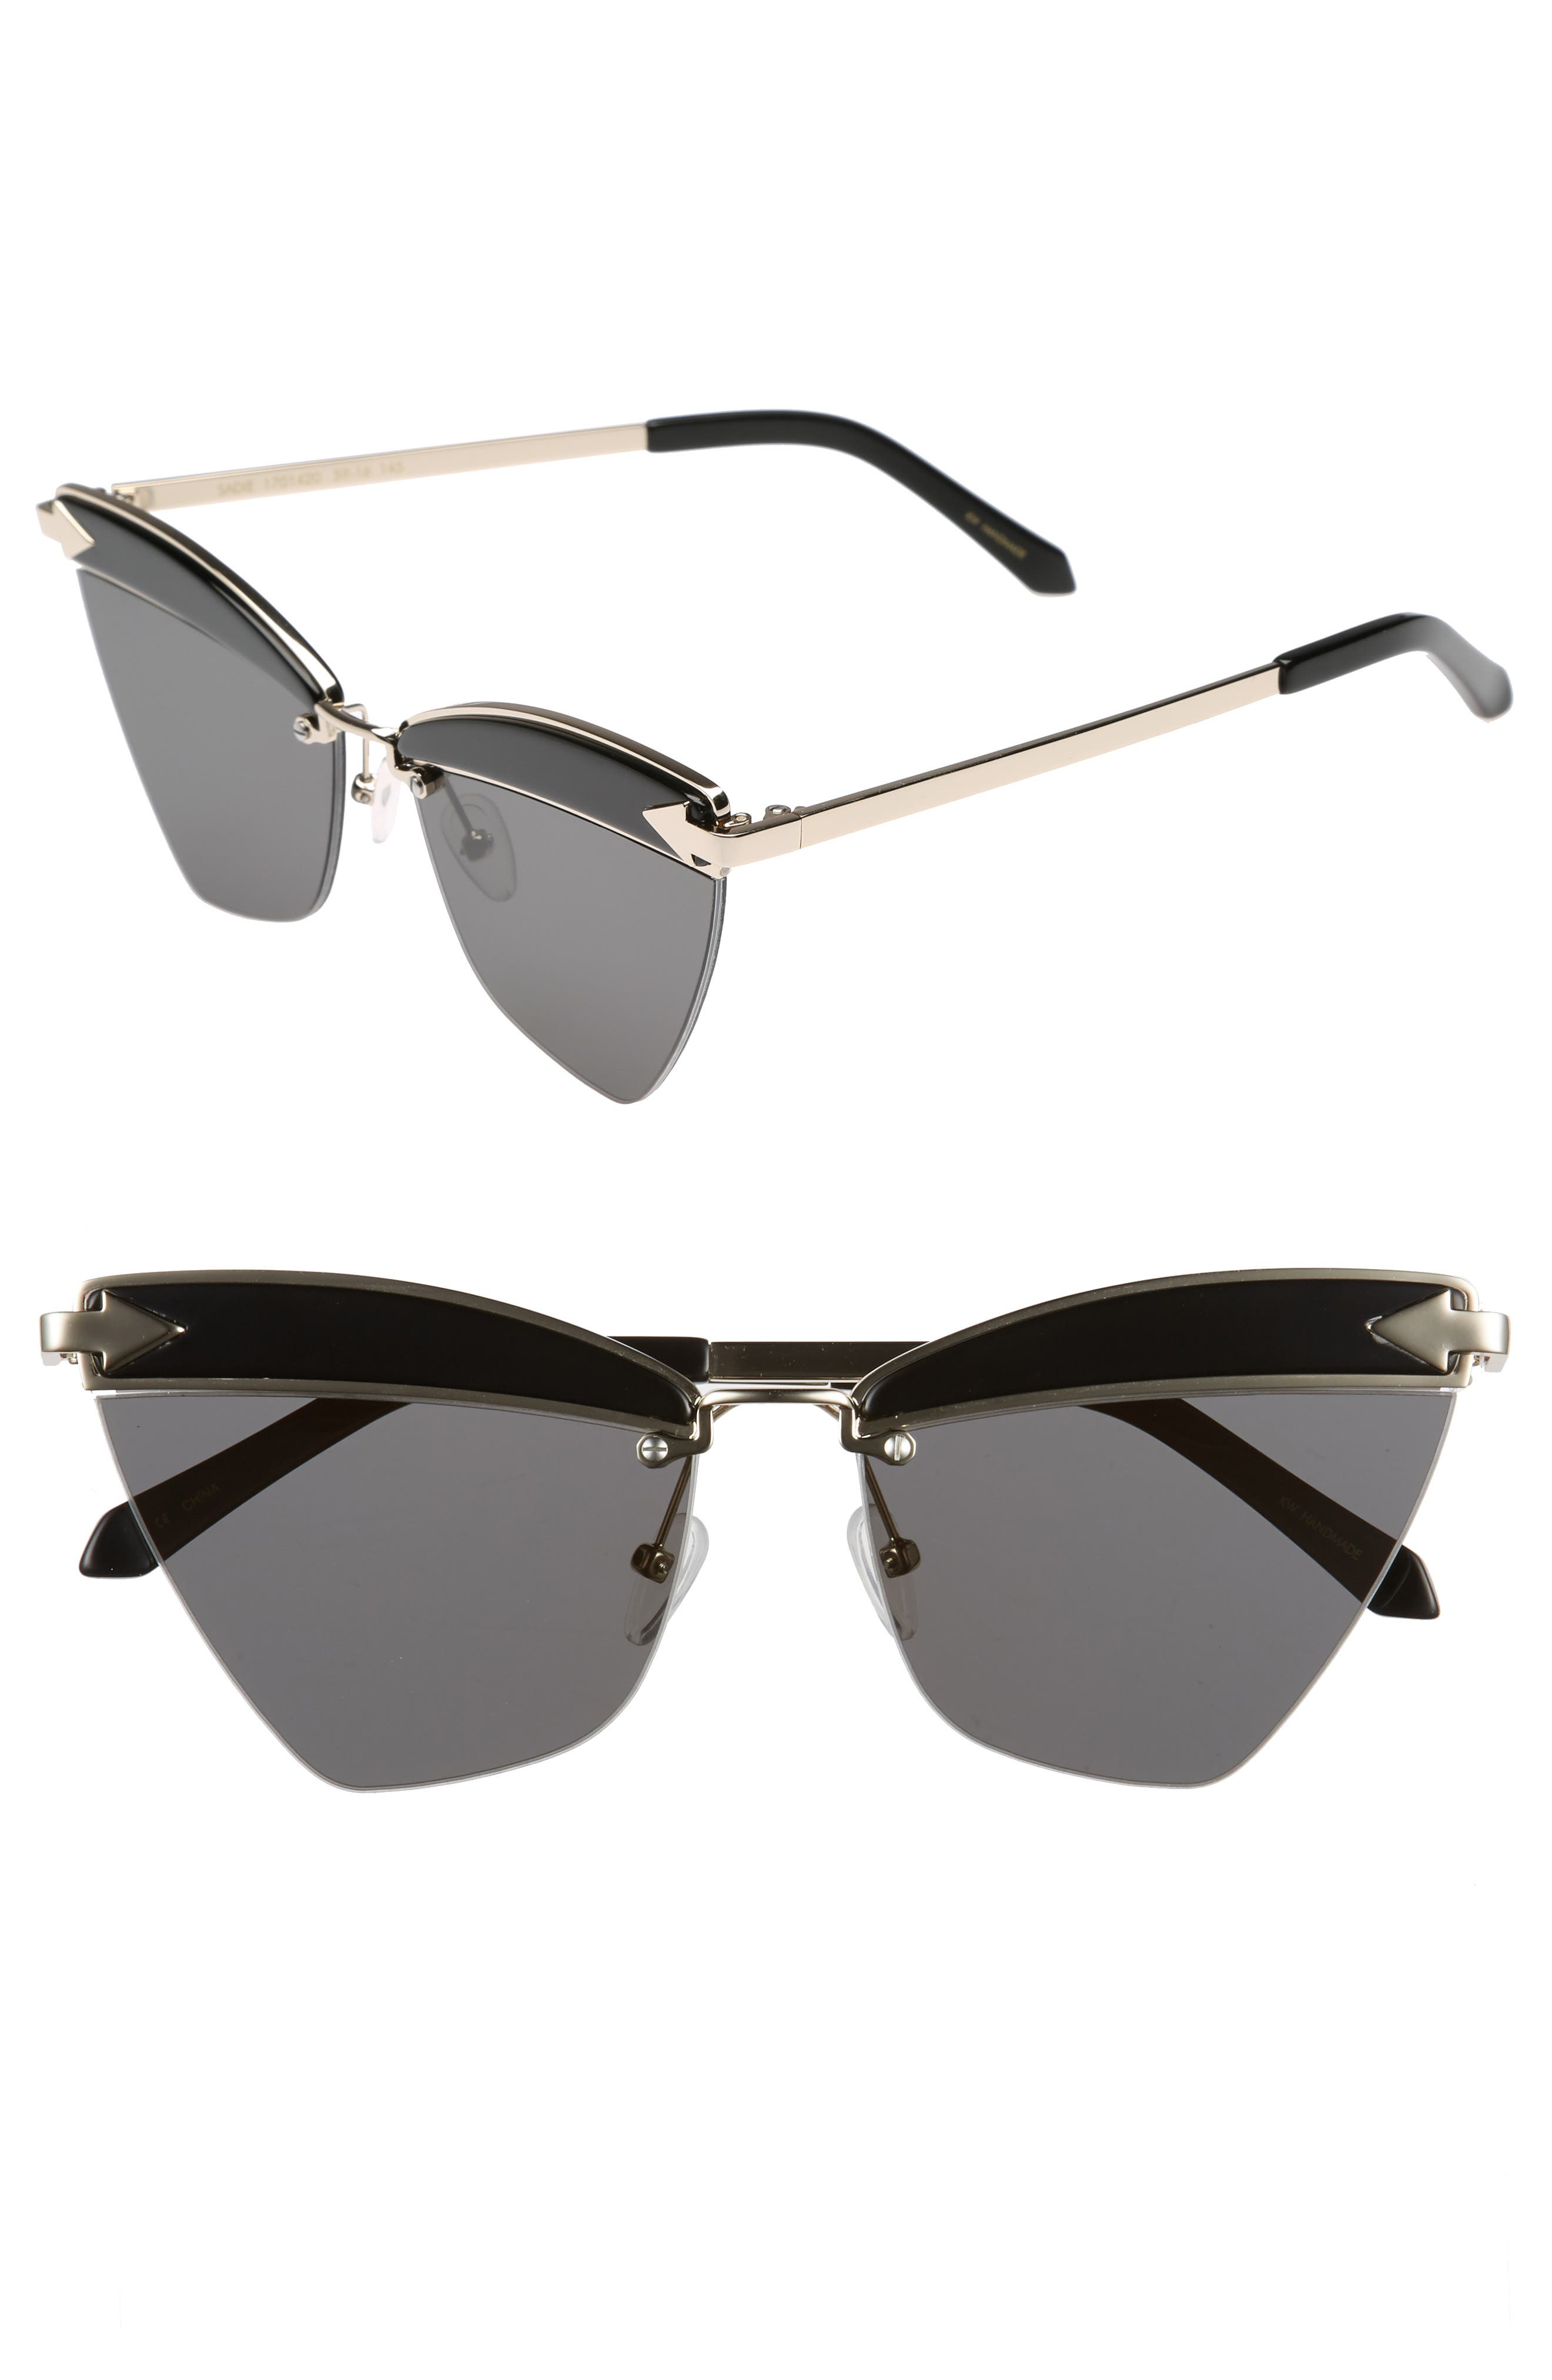 Main Image - Karen Walker Sadie 59mm Sunglasses